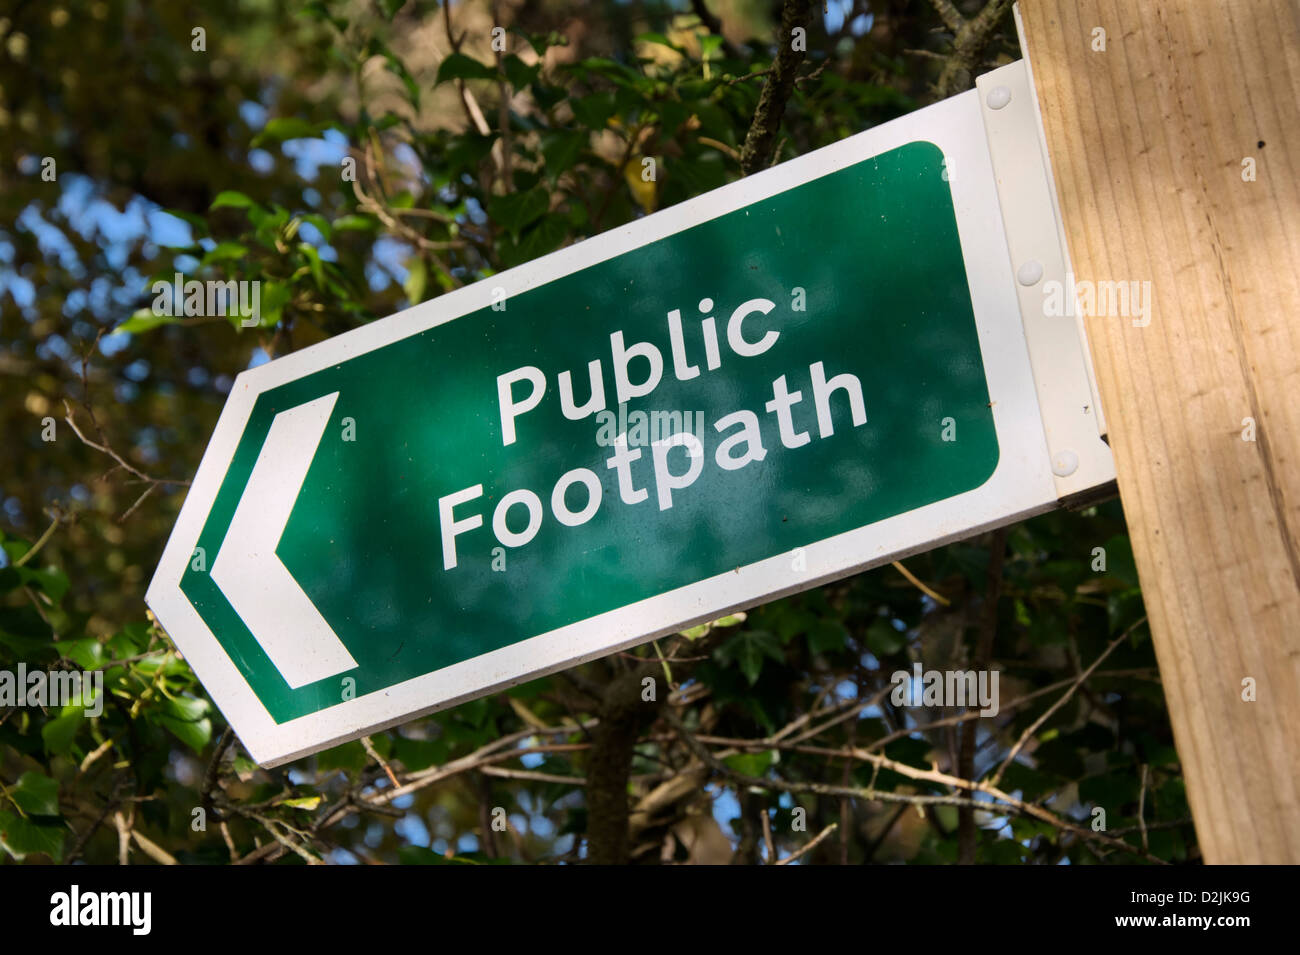 Signpost indicating a Public Footpath - Stock Image